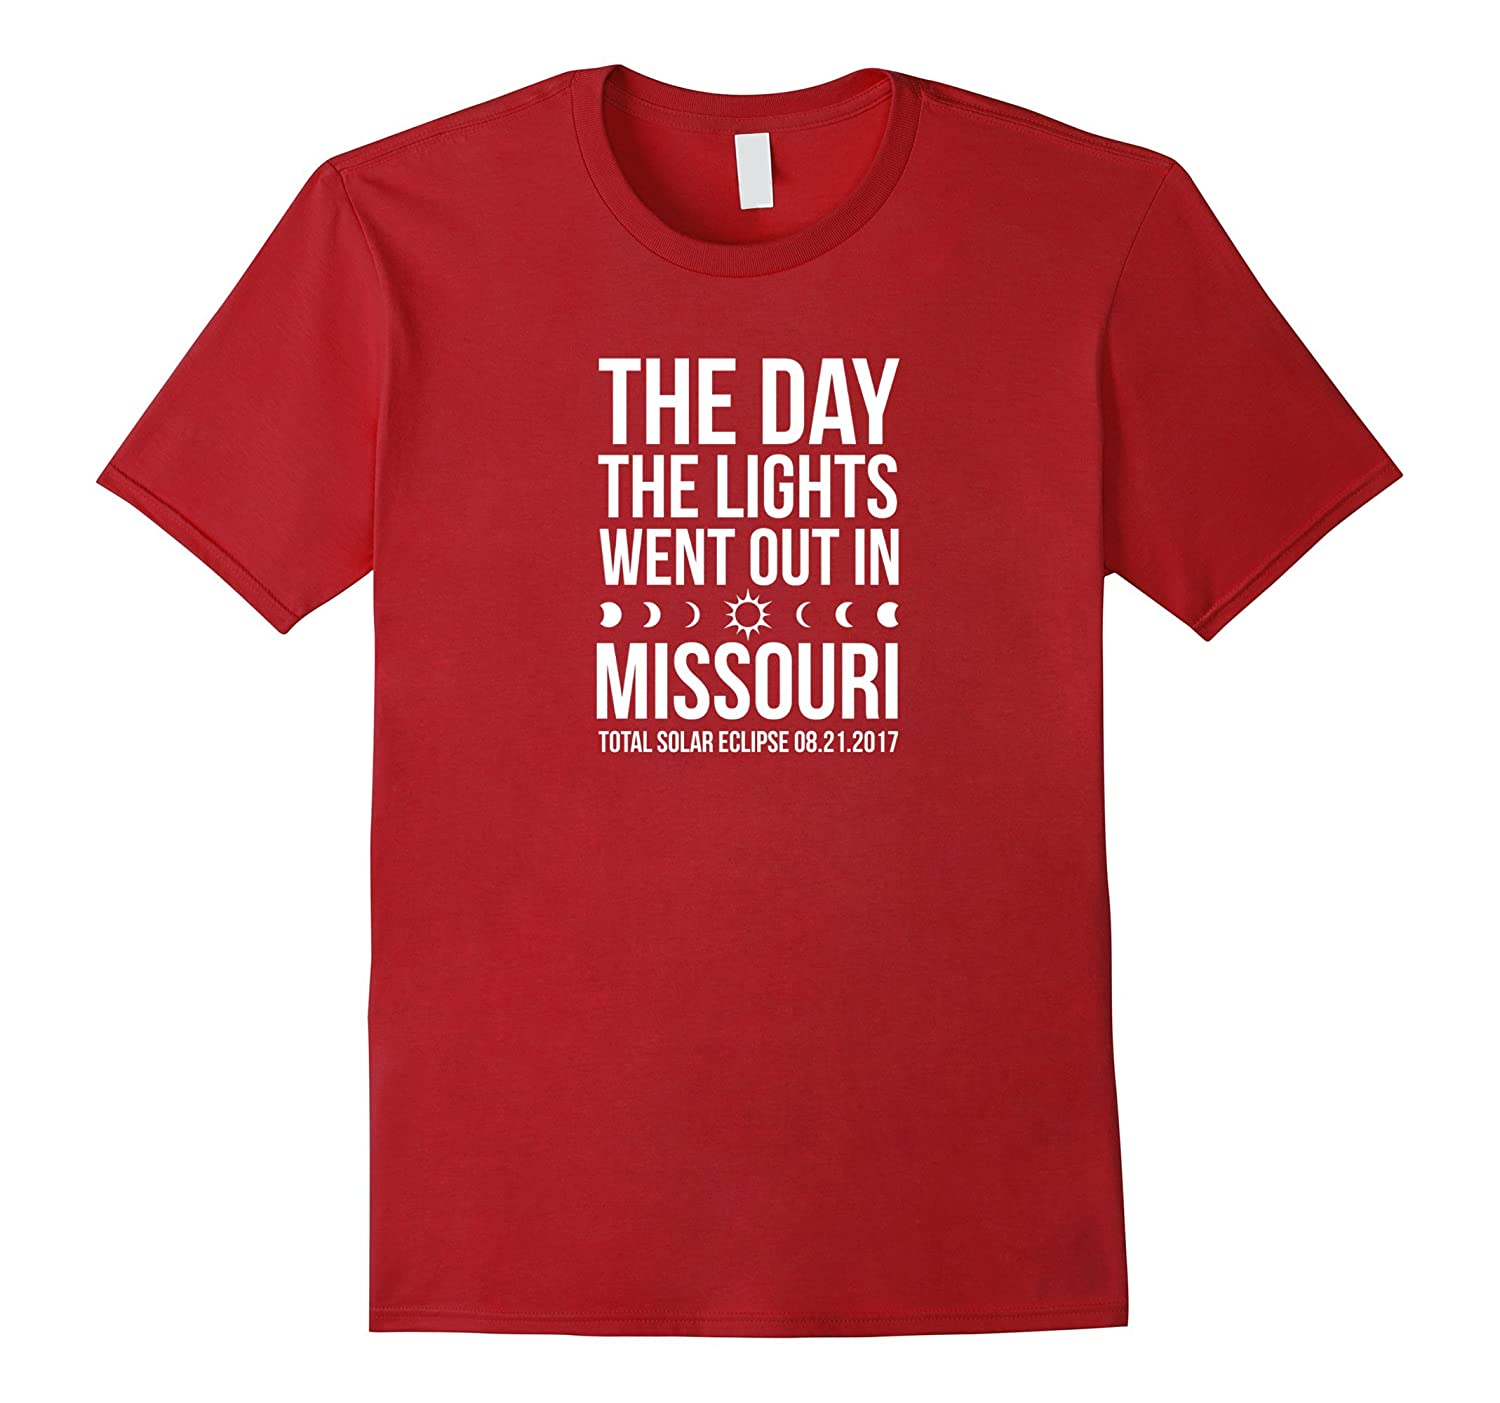 Total Solar Eclipse 2017 lights out Missouri tee shirt space-Art